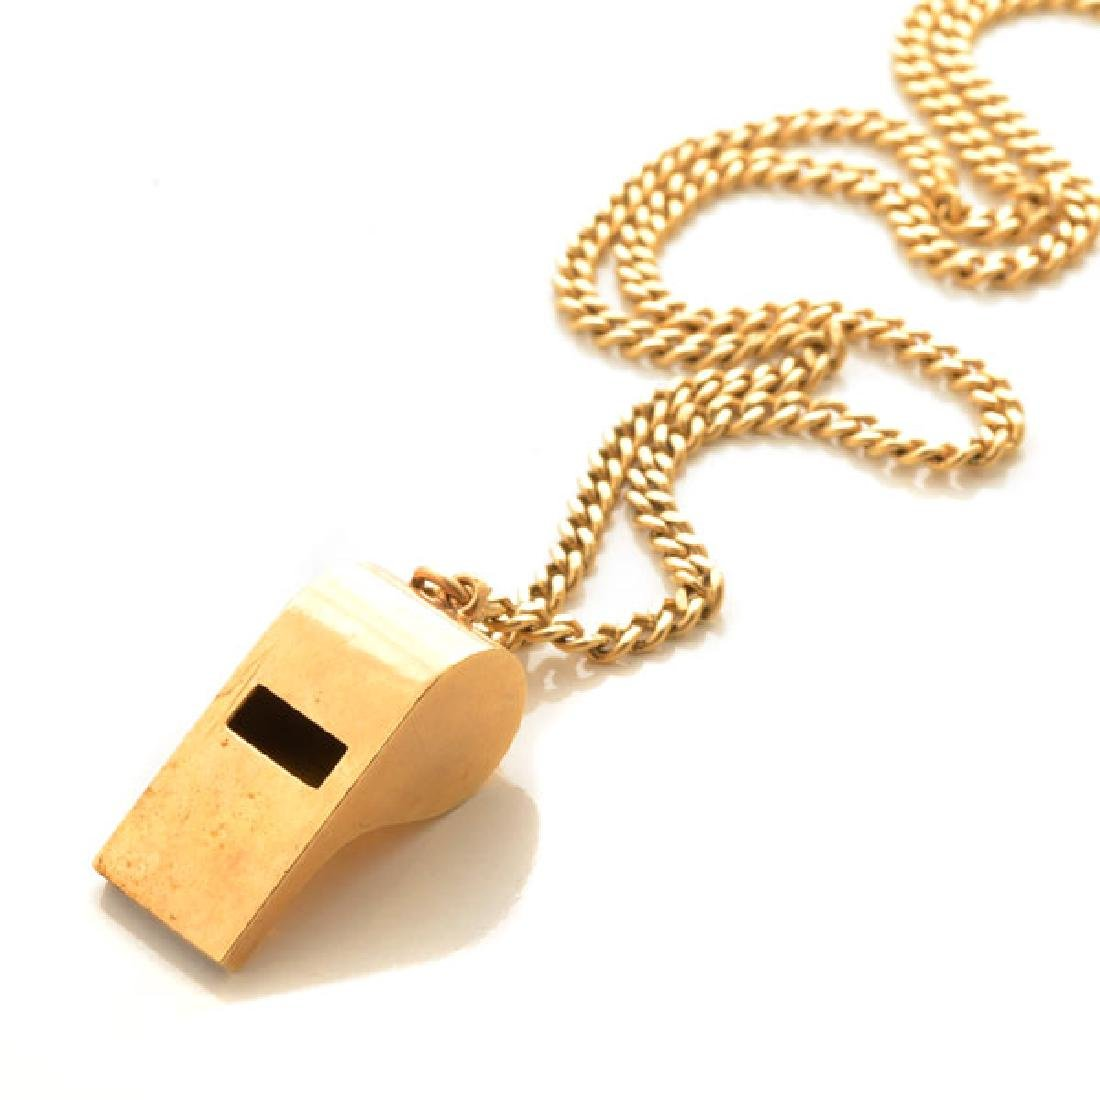 Tiffany & Co. 14k Yellow Gold Whistle Pendant Necklace.